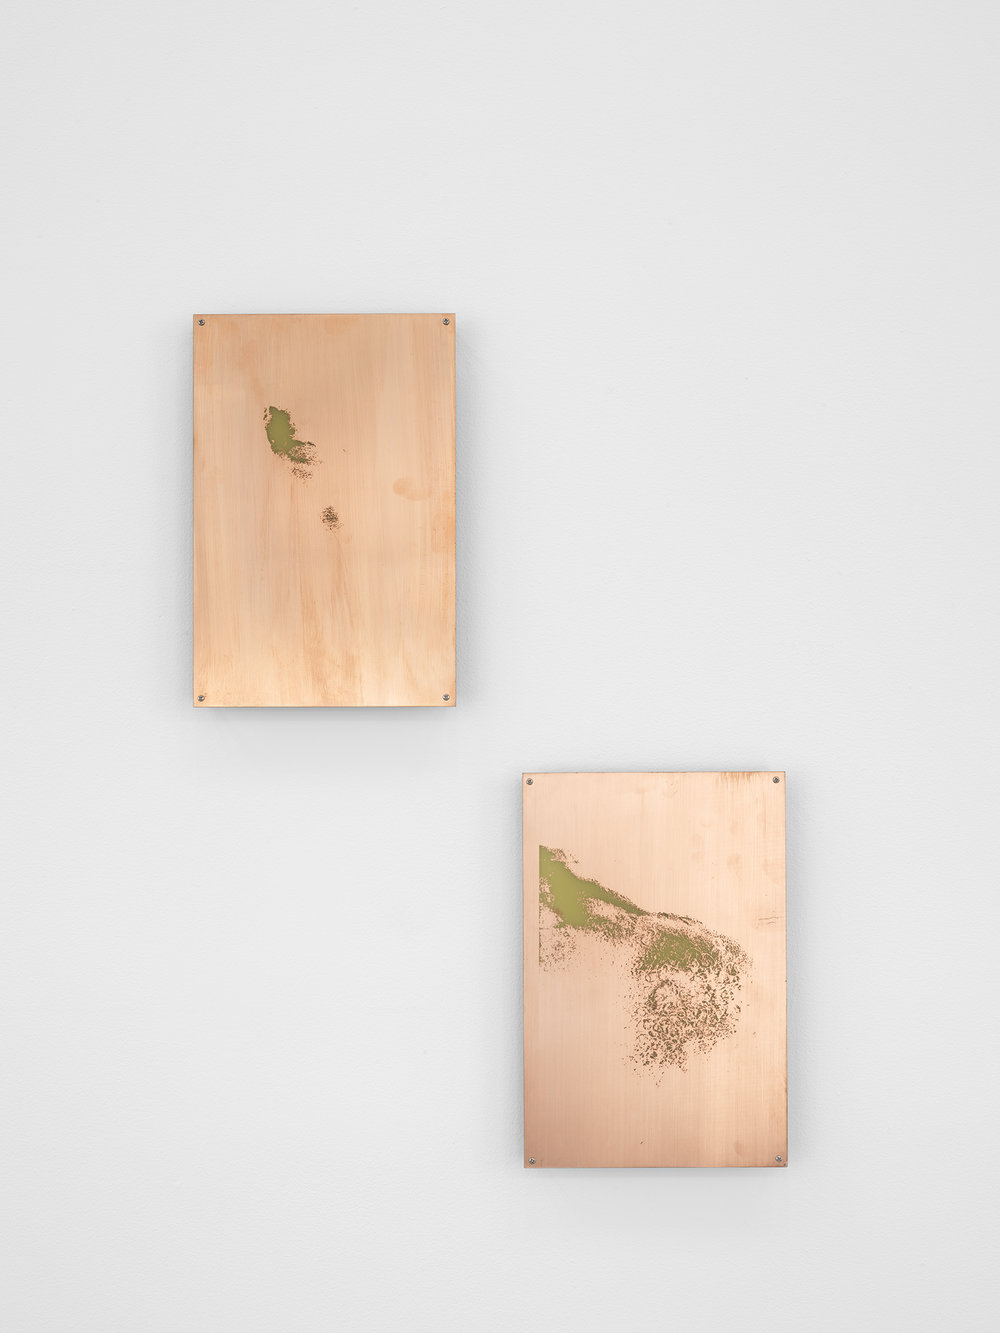 Body Print (Laryngeal Prominence, Sternum and Attending Soft Tissues)    2017   Etched copper-clad FR-4 glass-reinforced epoxy laminate board  12 x 8 inches each, 2 parts   Body Prints, 2017–